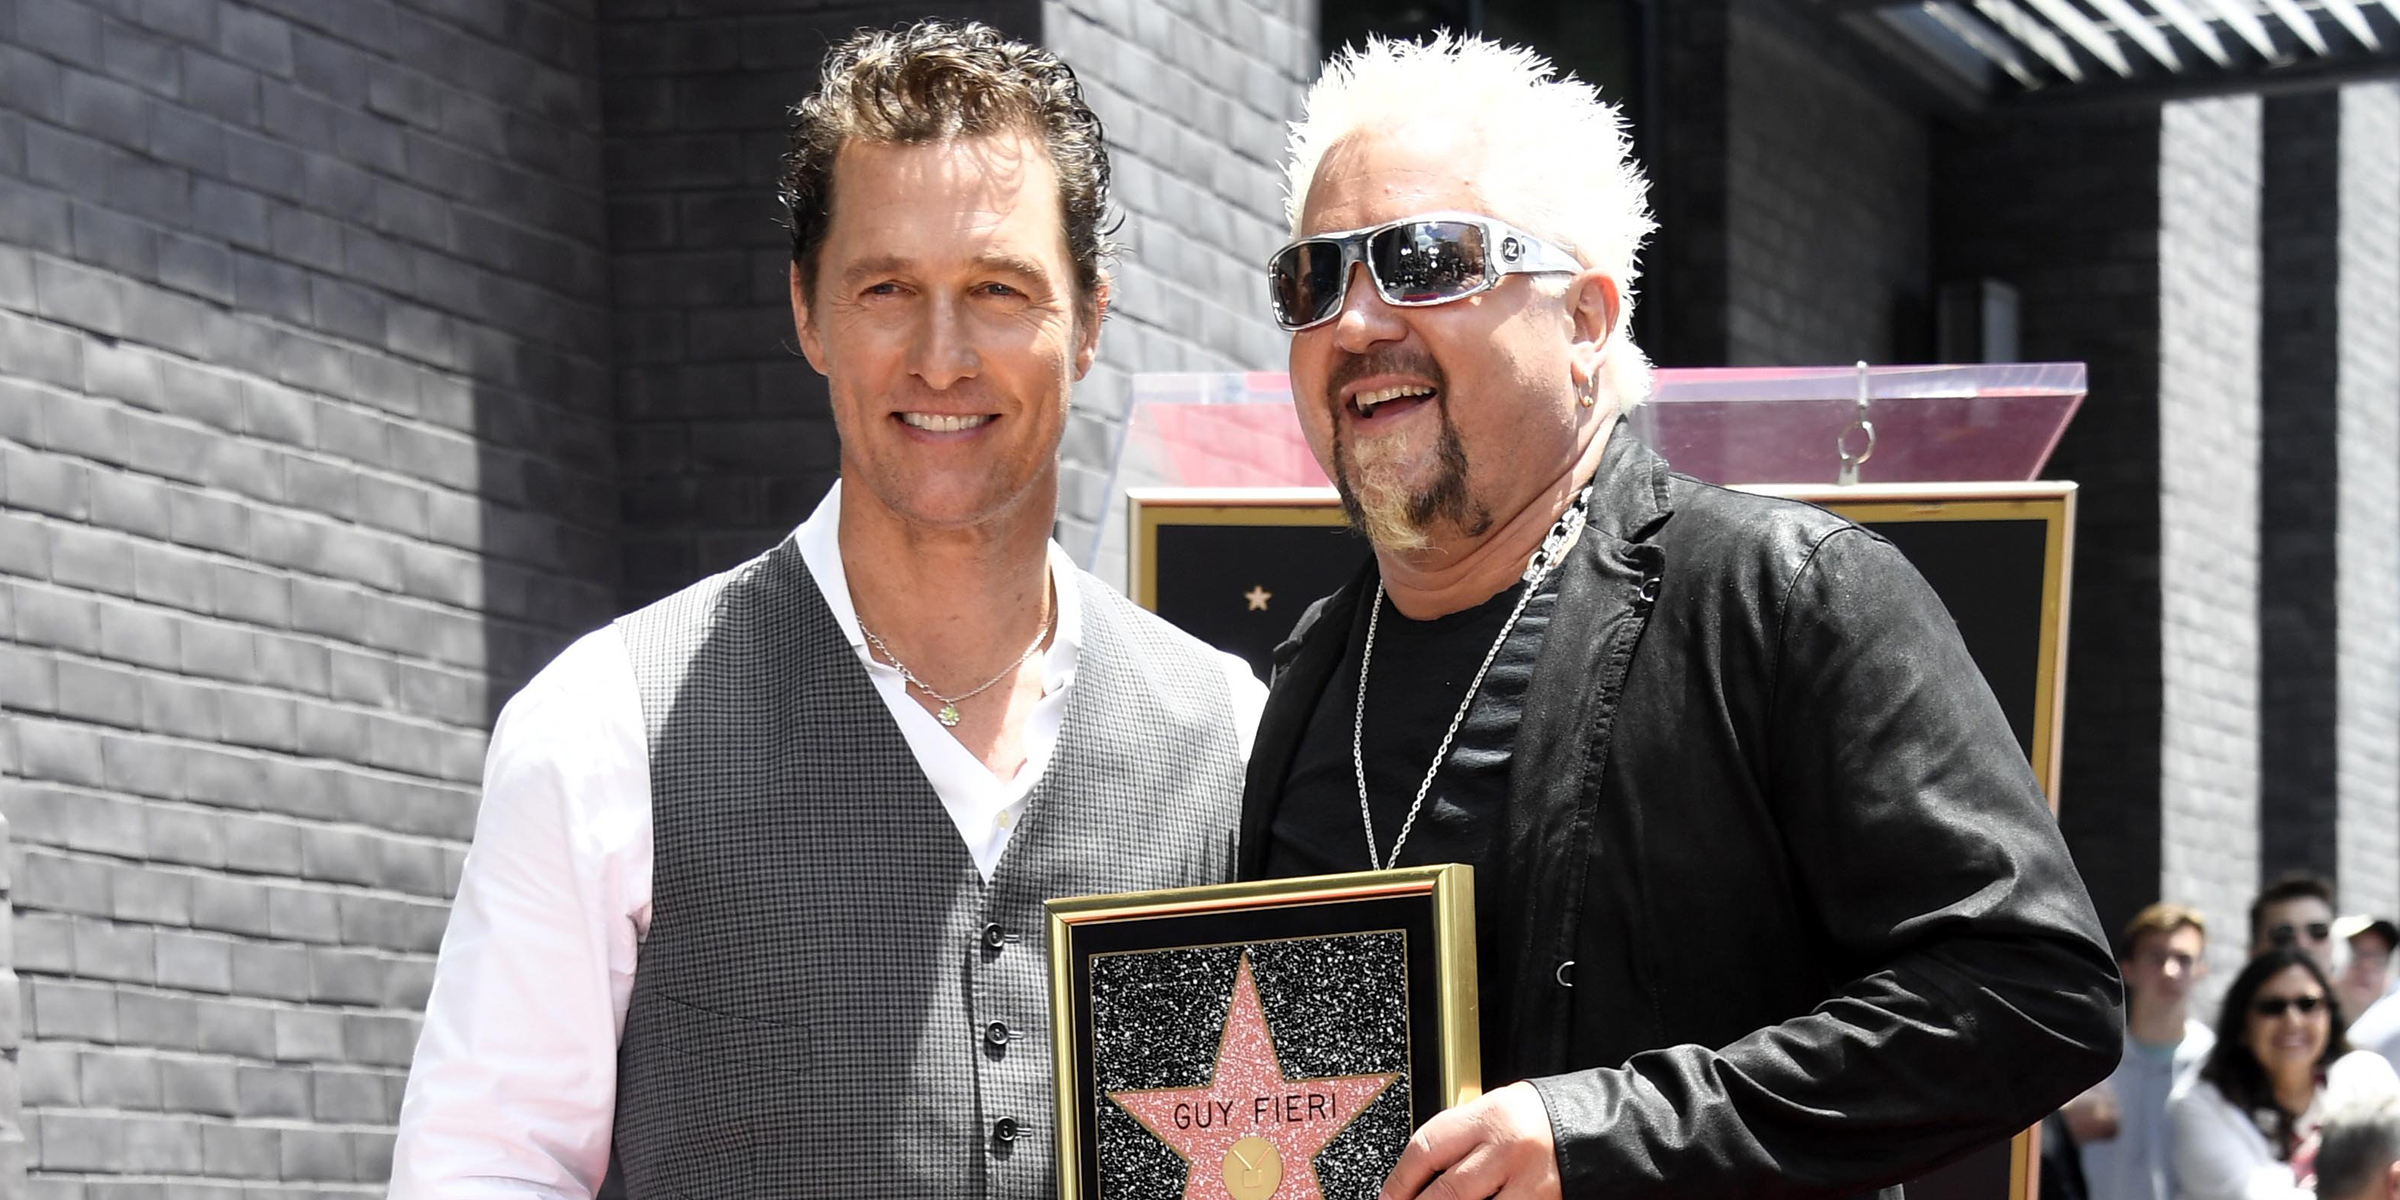 Matthew McConaughey celebrates pal Guy Fieri on the Hollywood Walk of Fame